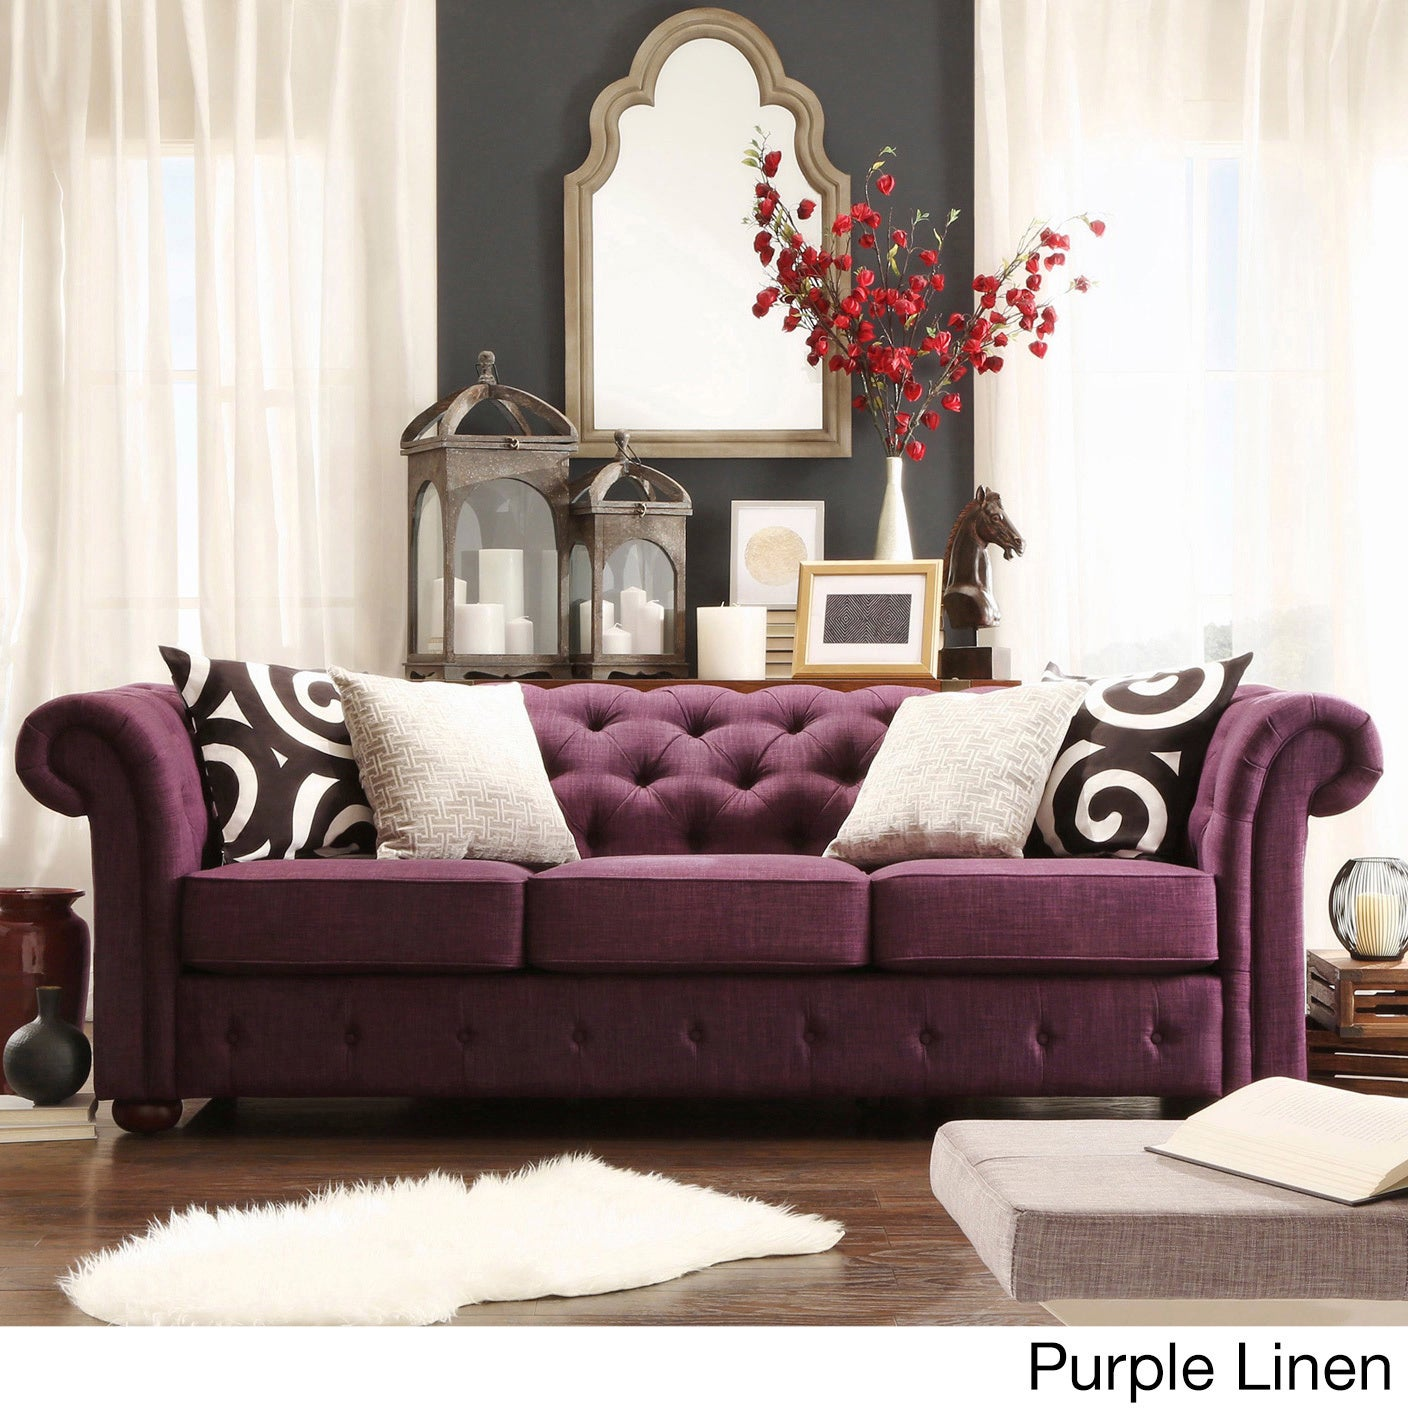 Knightsbridge Tufted Scroll Arm Chesterfield Sofa By INSPIRE Q Artisan  (Option: Purple Linen Sofa